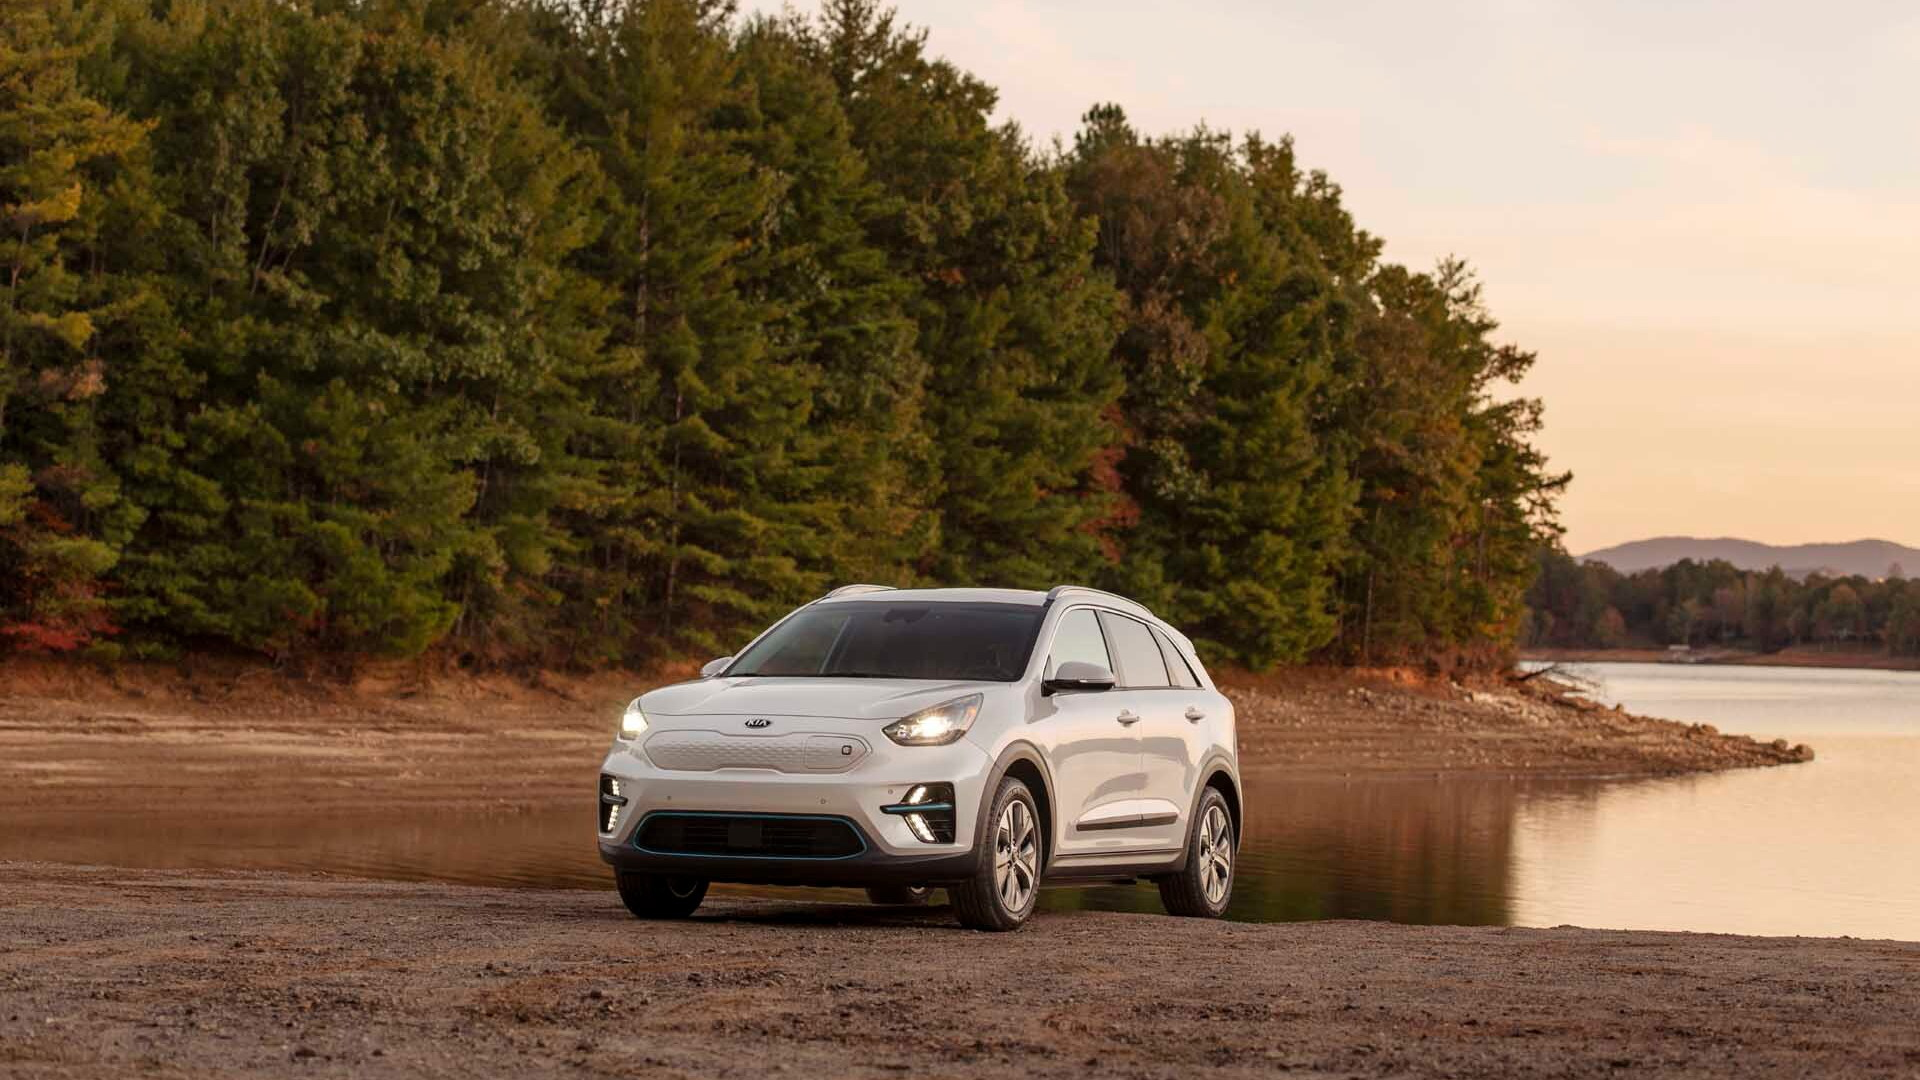 2019 Kia Niro EV - Best Car To Buy 2020